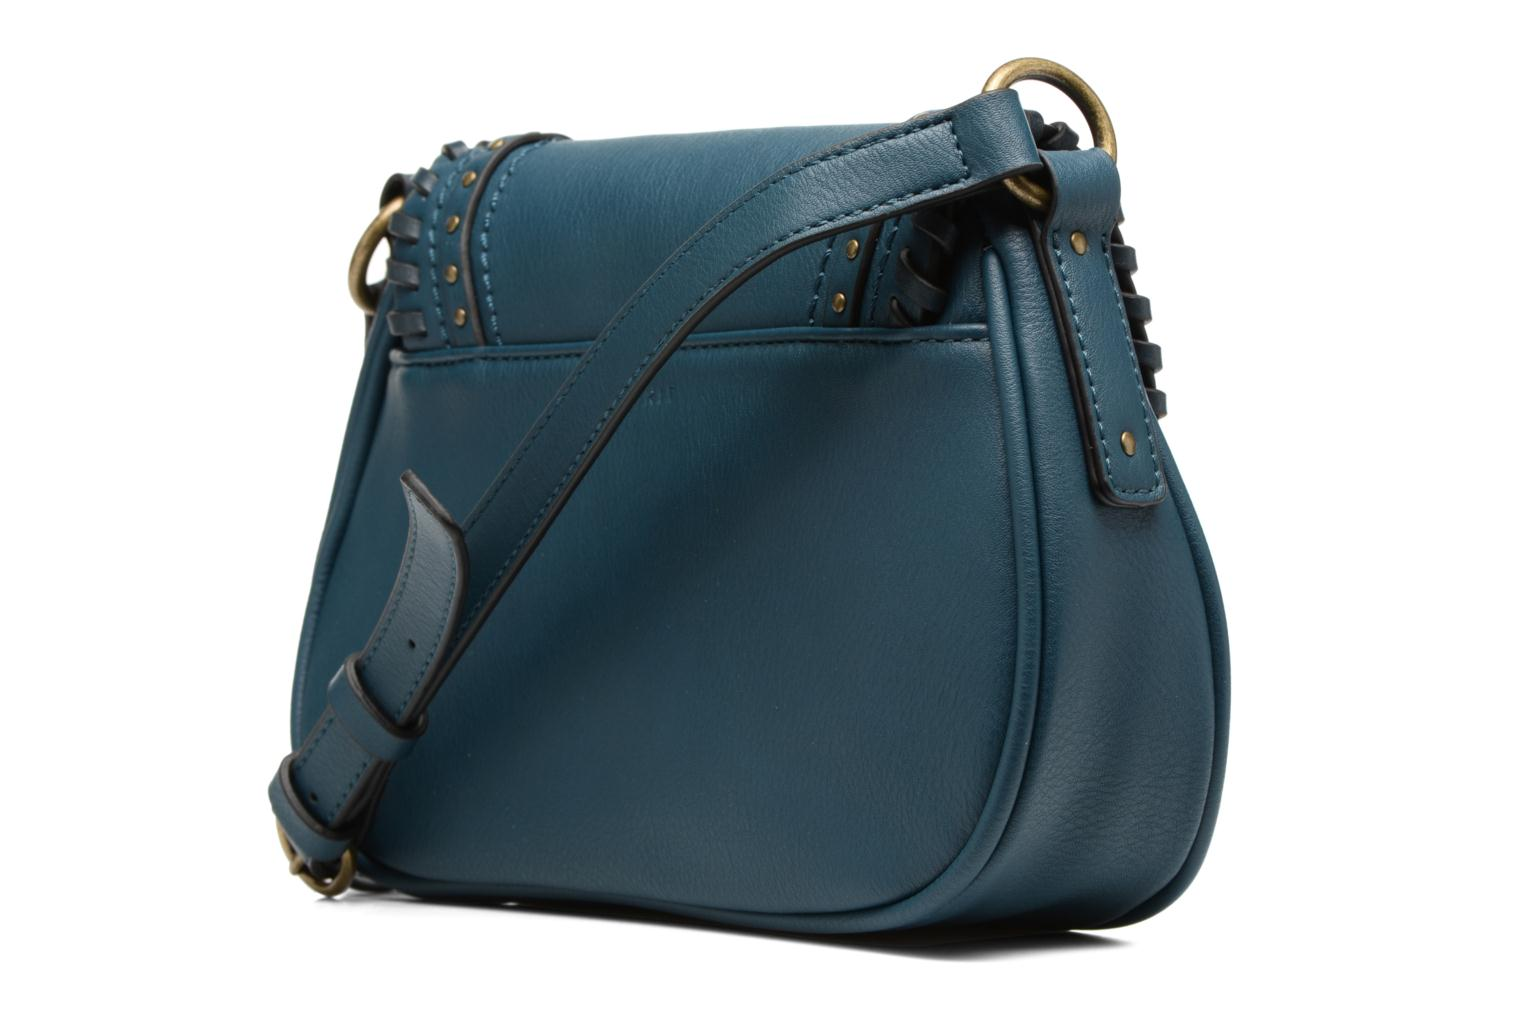 Whitney Shoulder bag Teal green